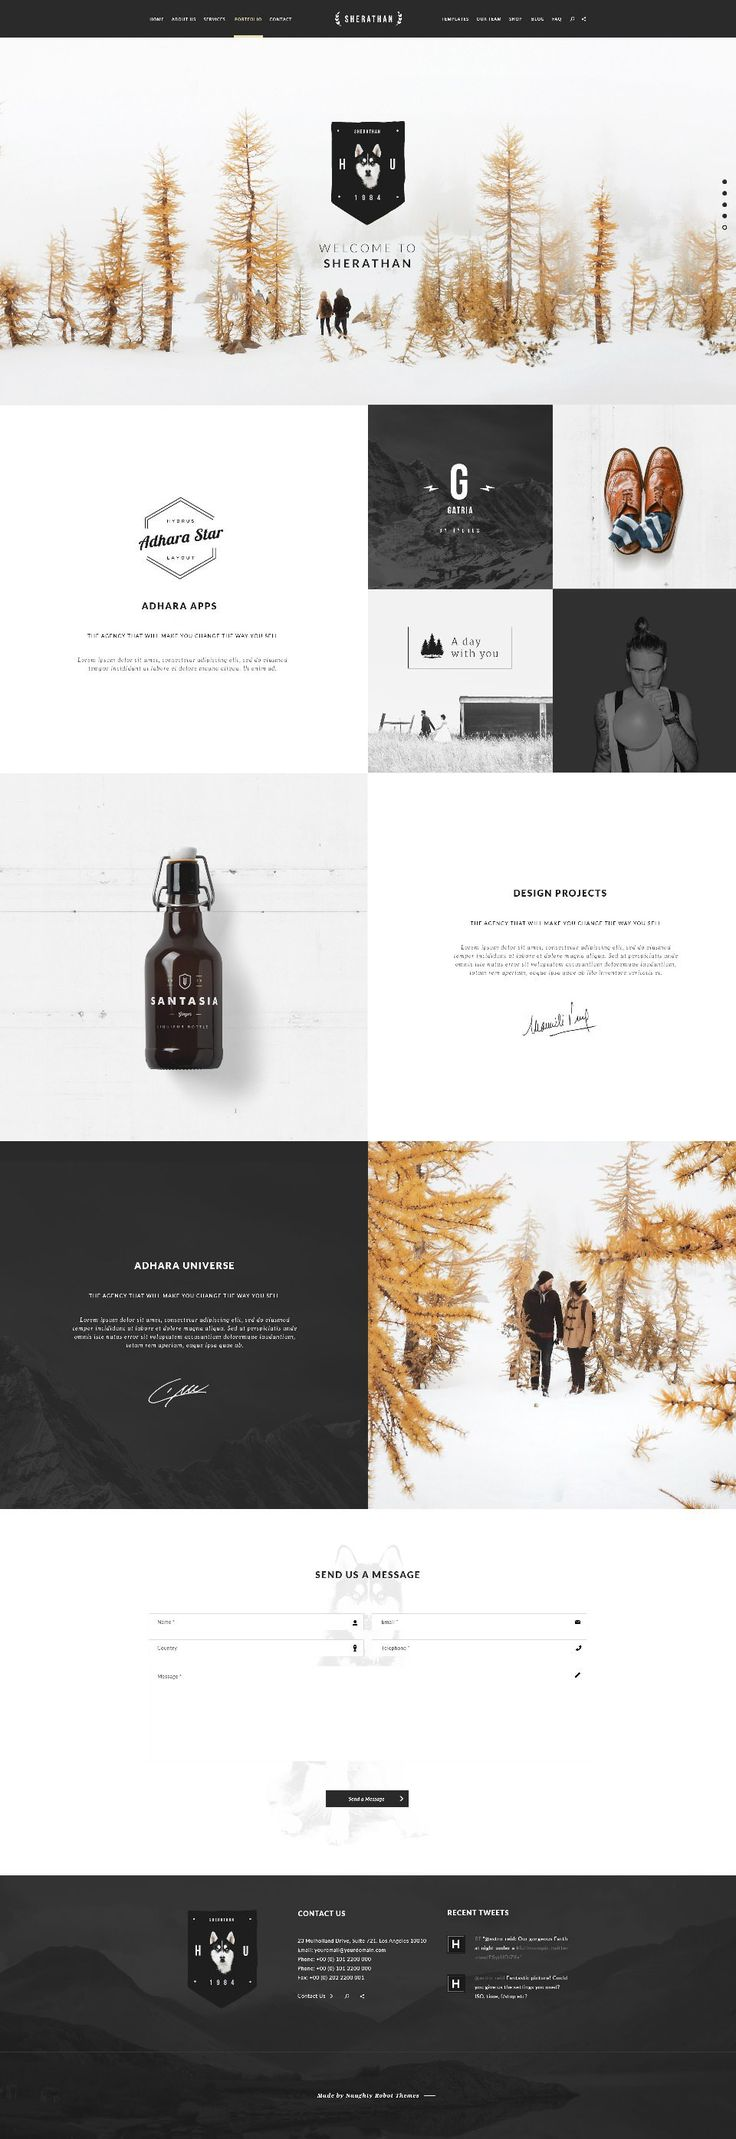 Best 25+ Website designs ideas on Pinterest | Website design ...